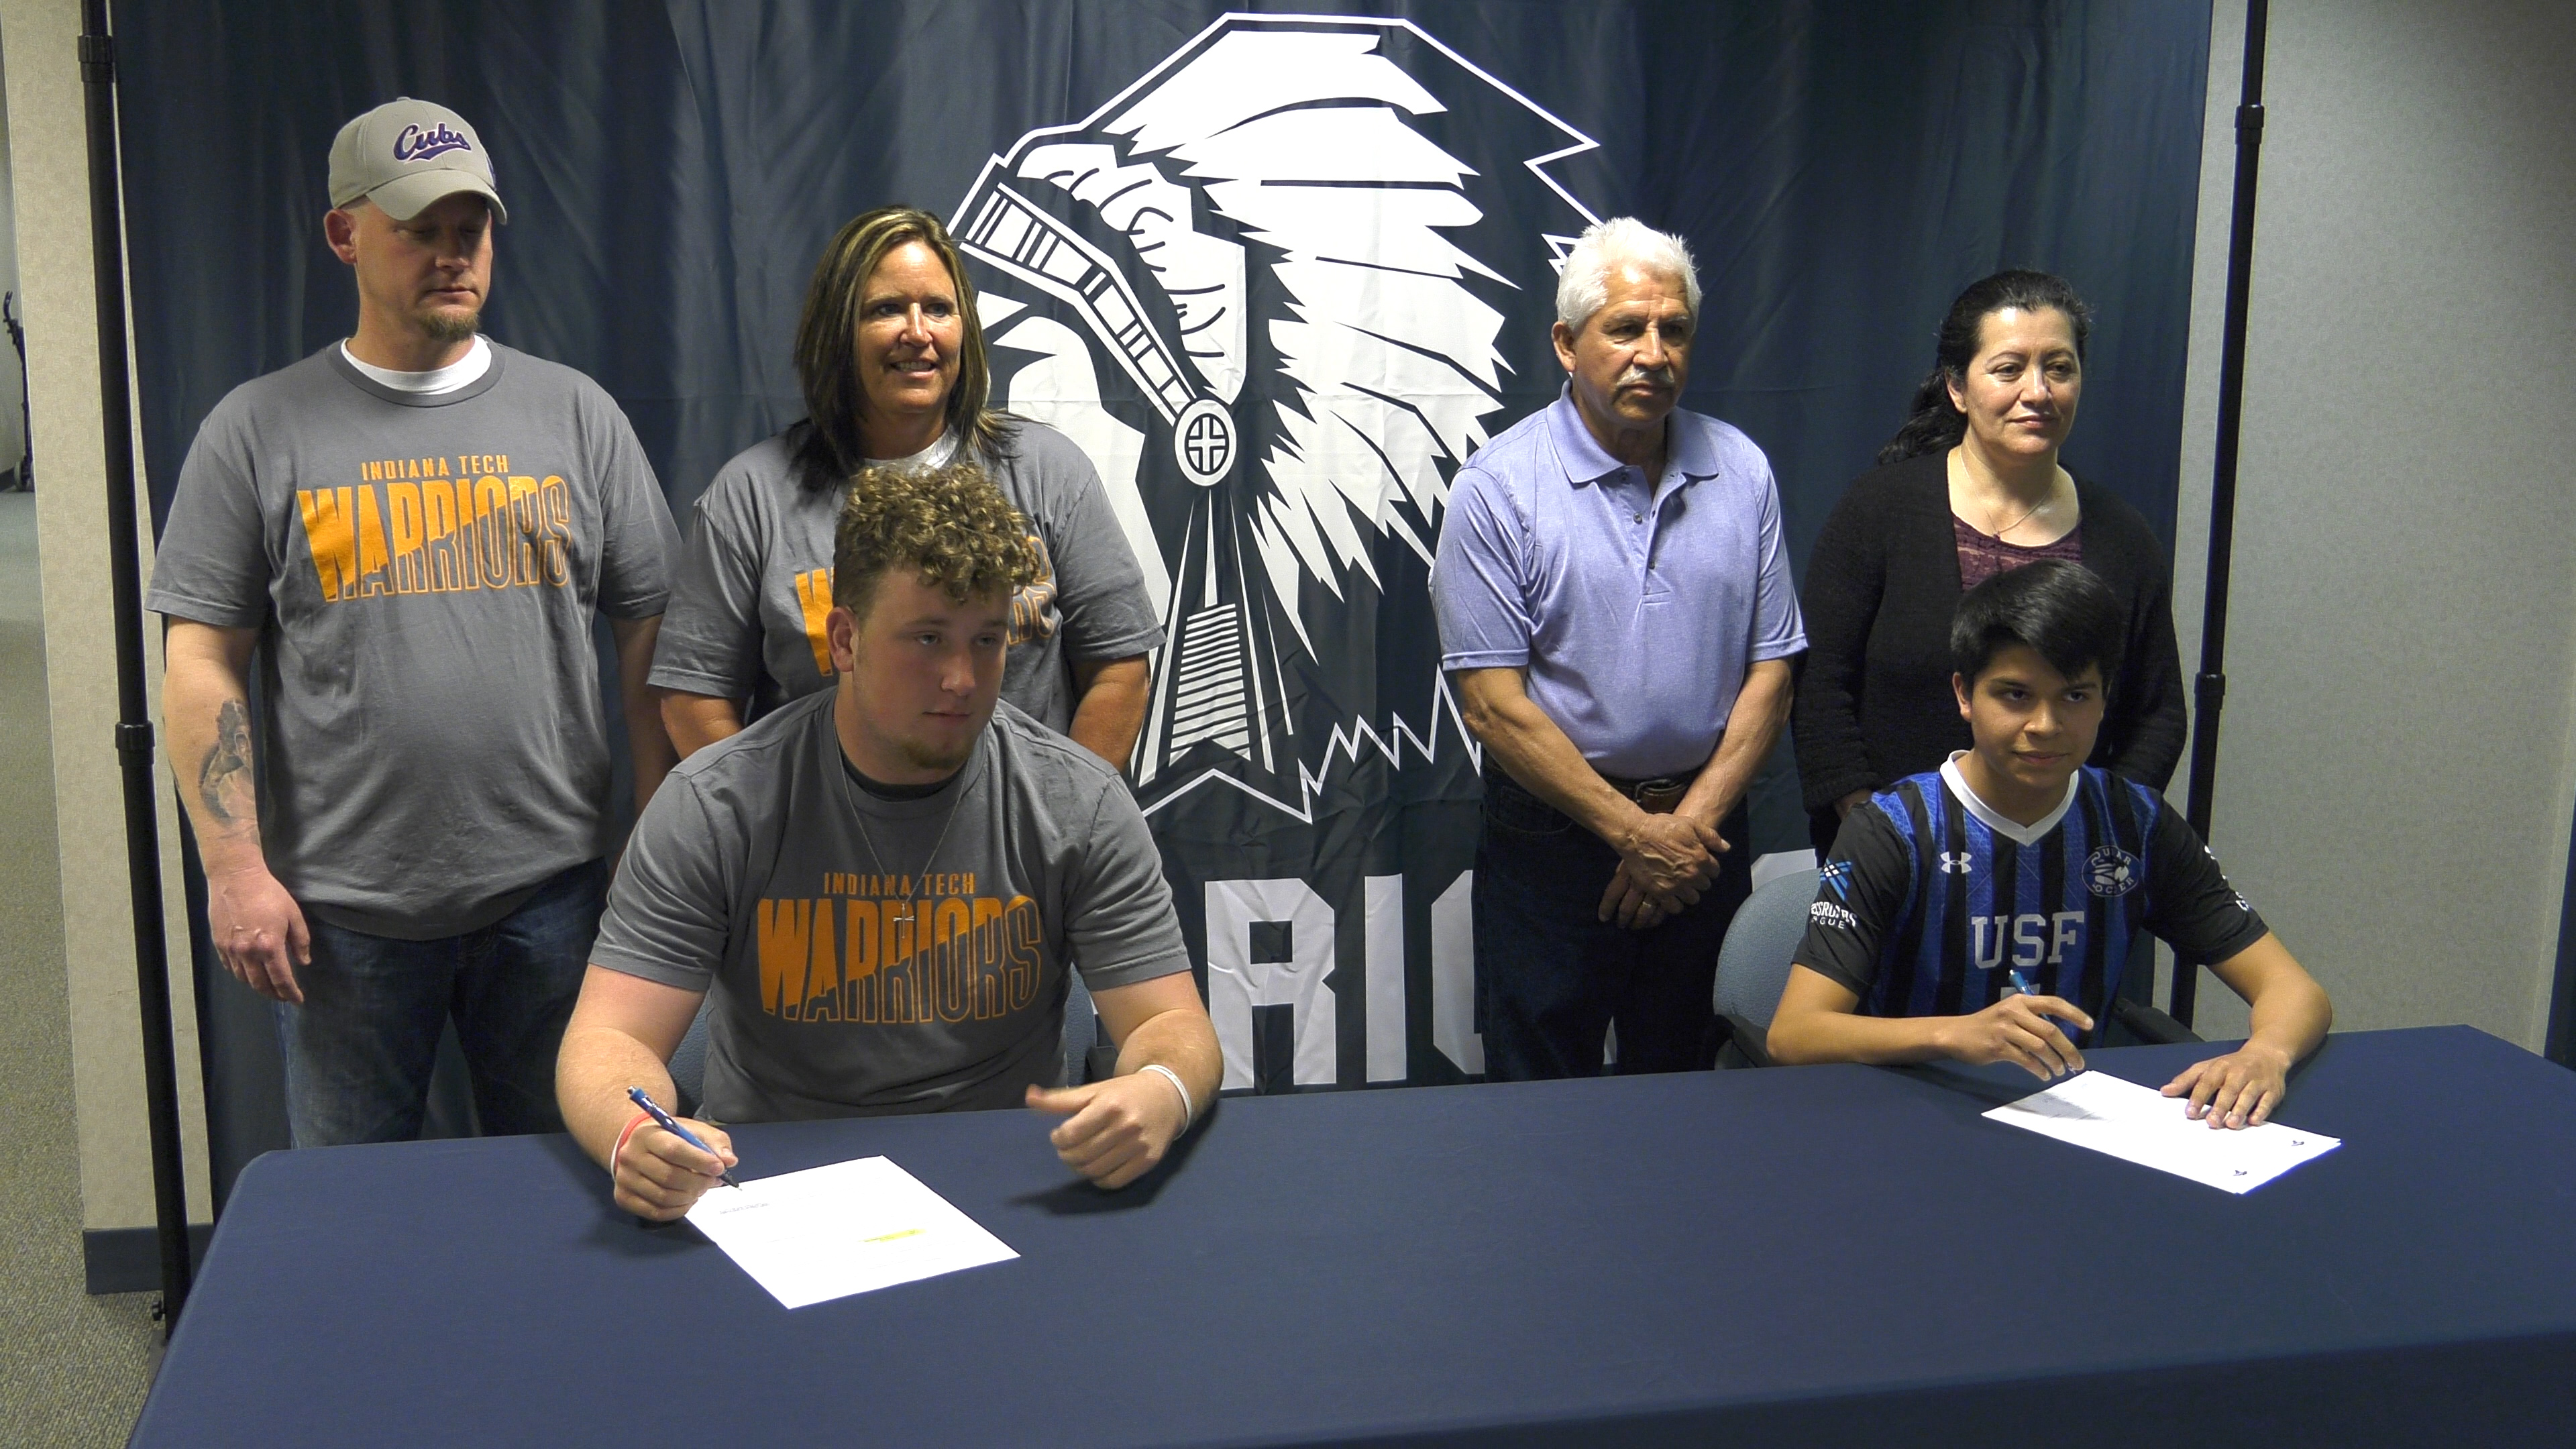 Woodlan seniors Brooks & Vaides sign letters of intent